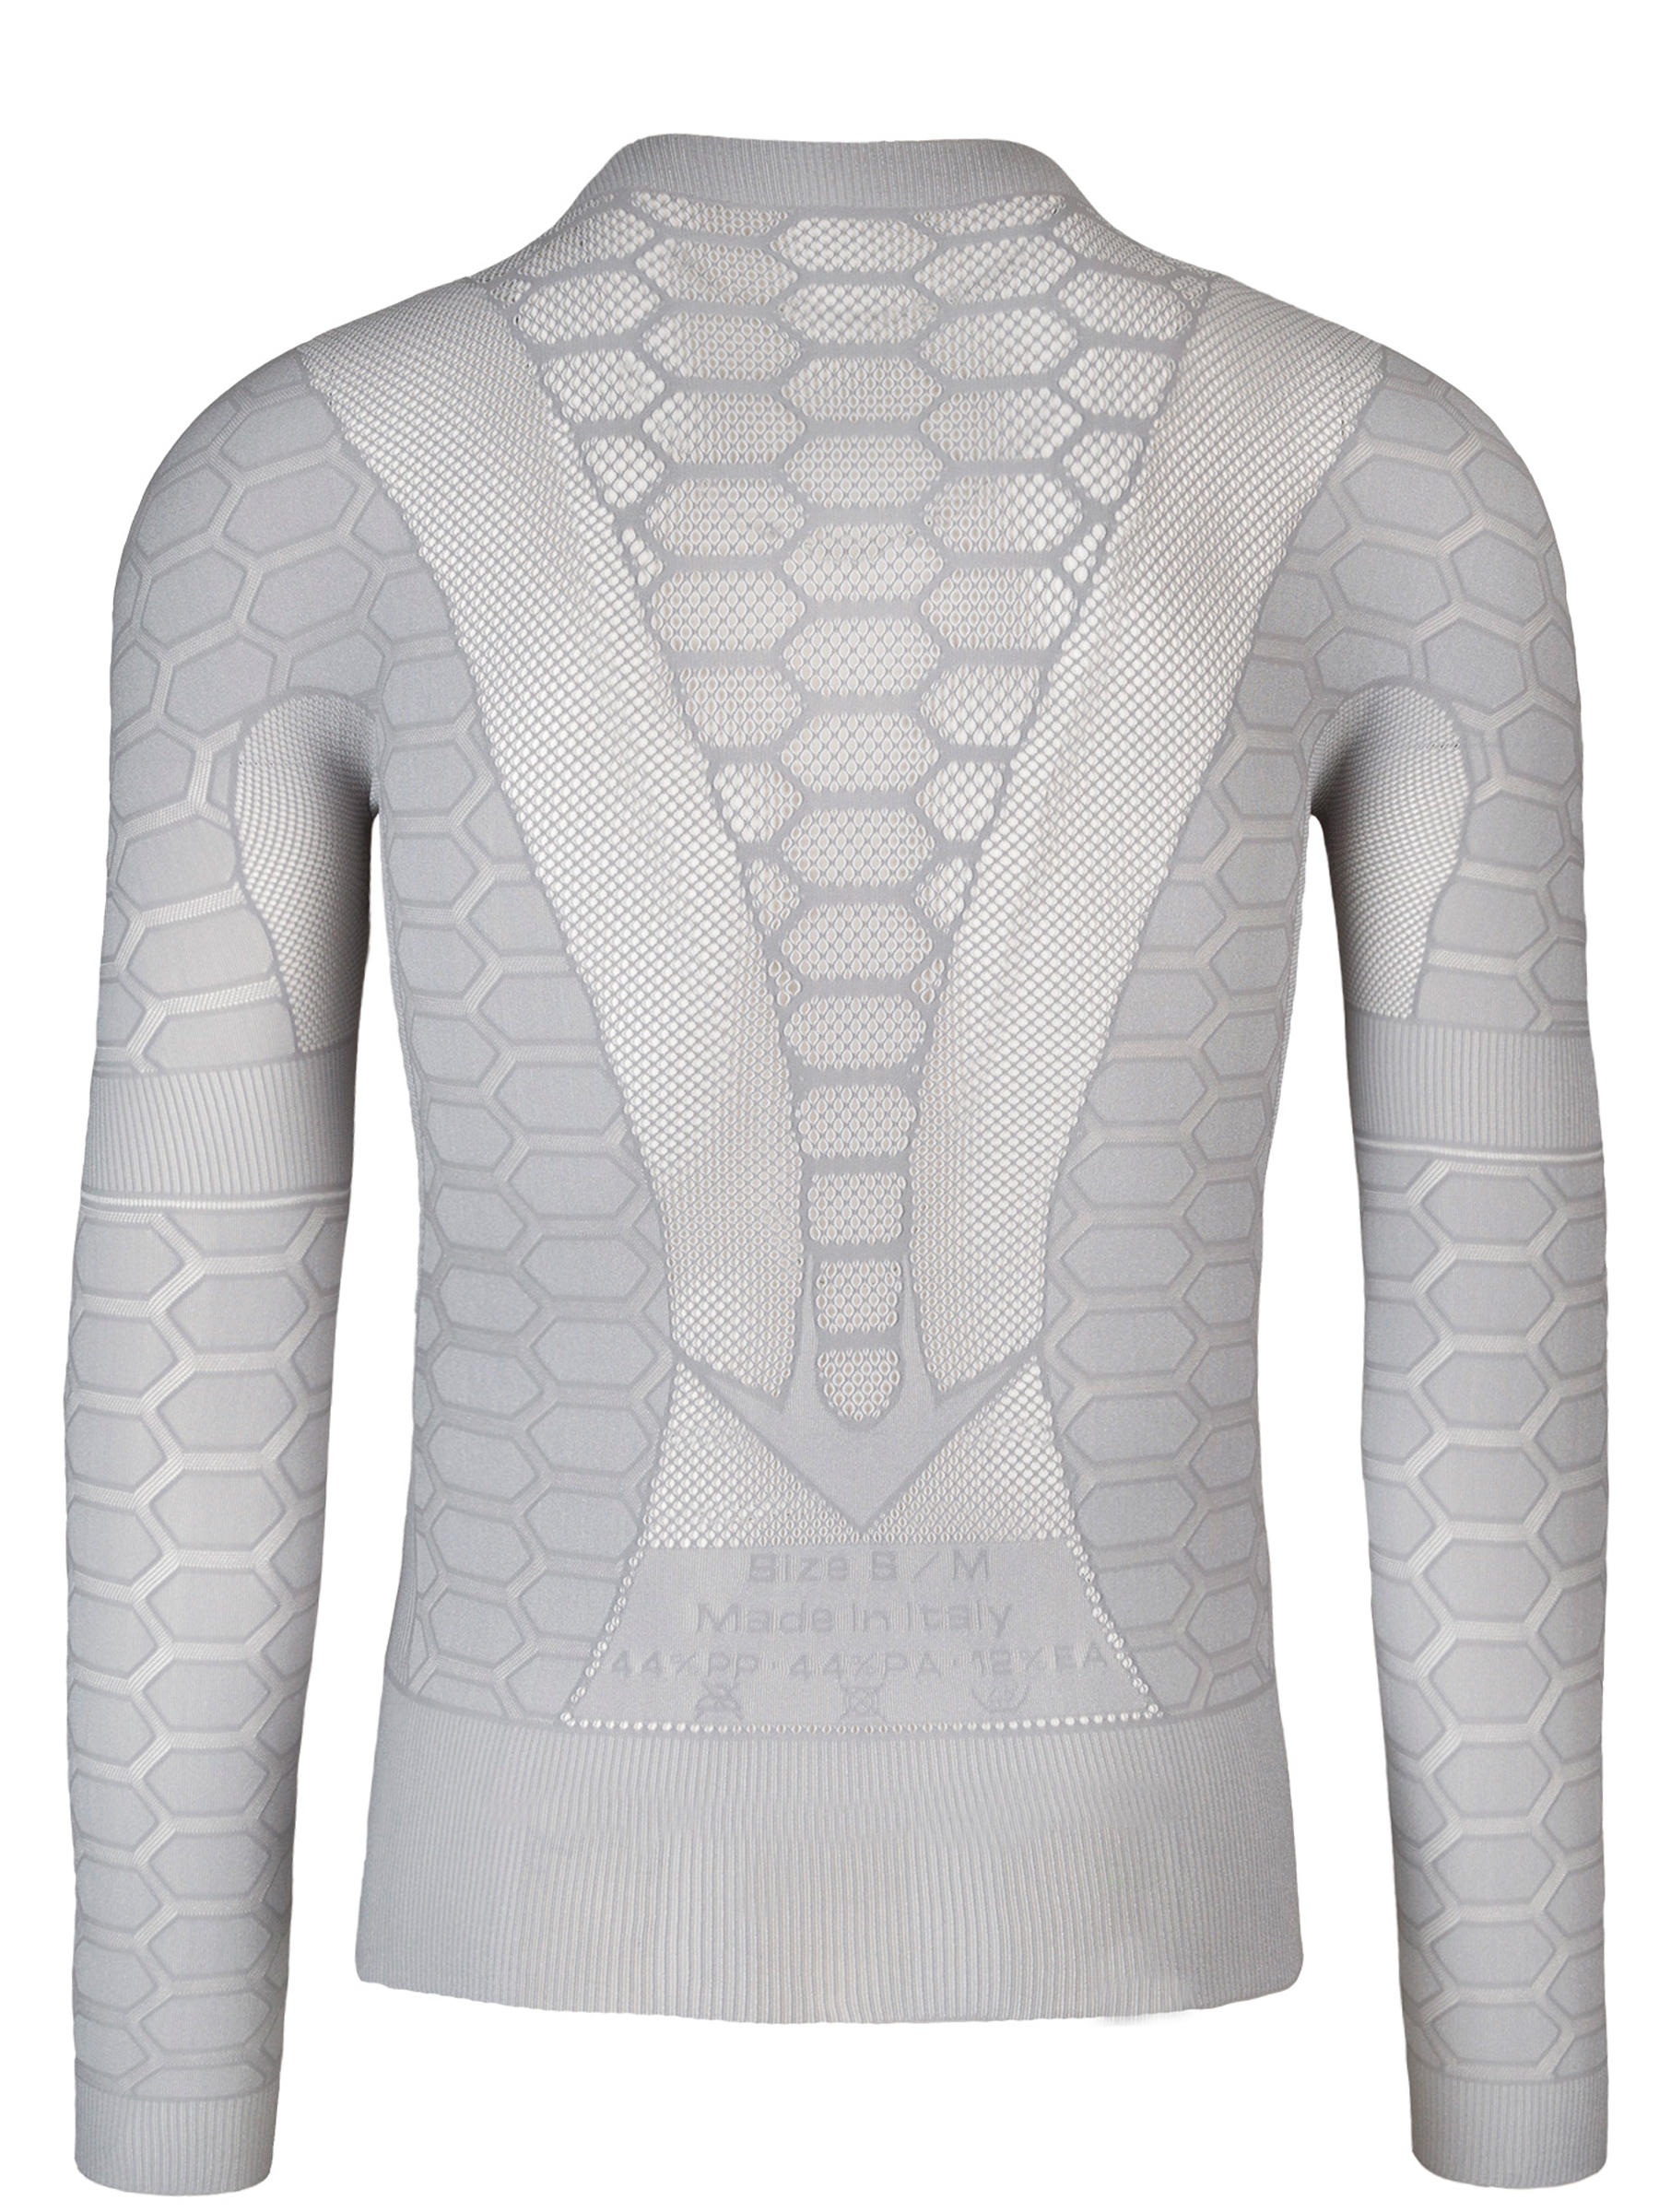 Base Layer 3 long sleeve